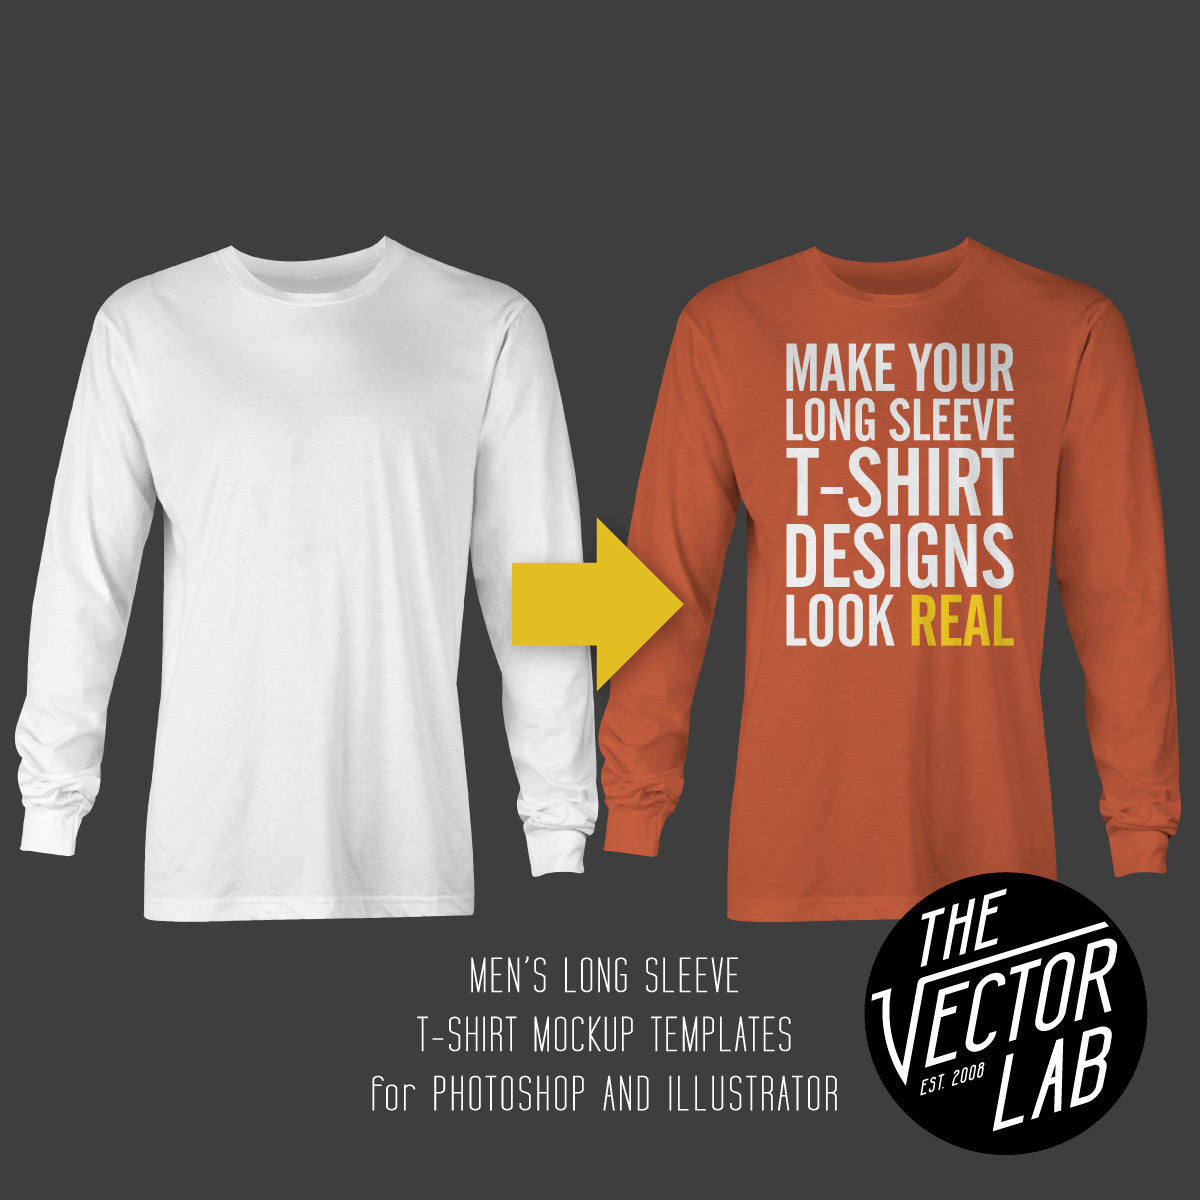 Men's Long Sleeve T-Shirt Mockup Templates for Photoshop and Illustrator